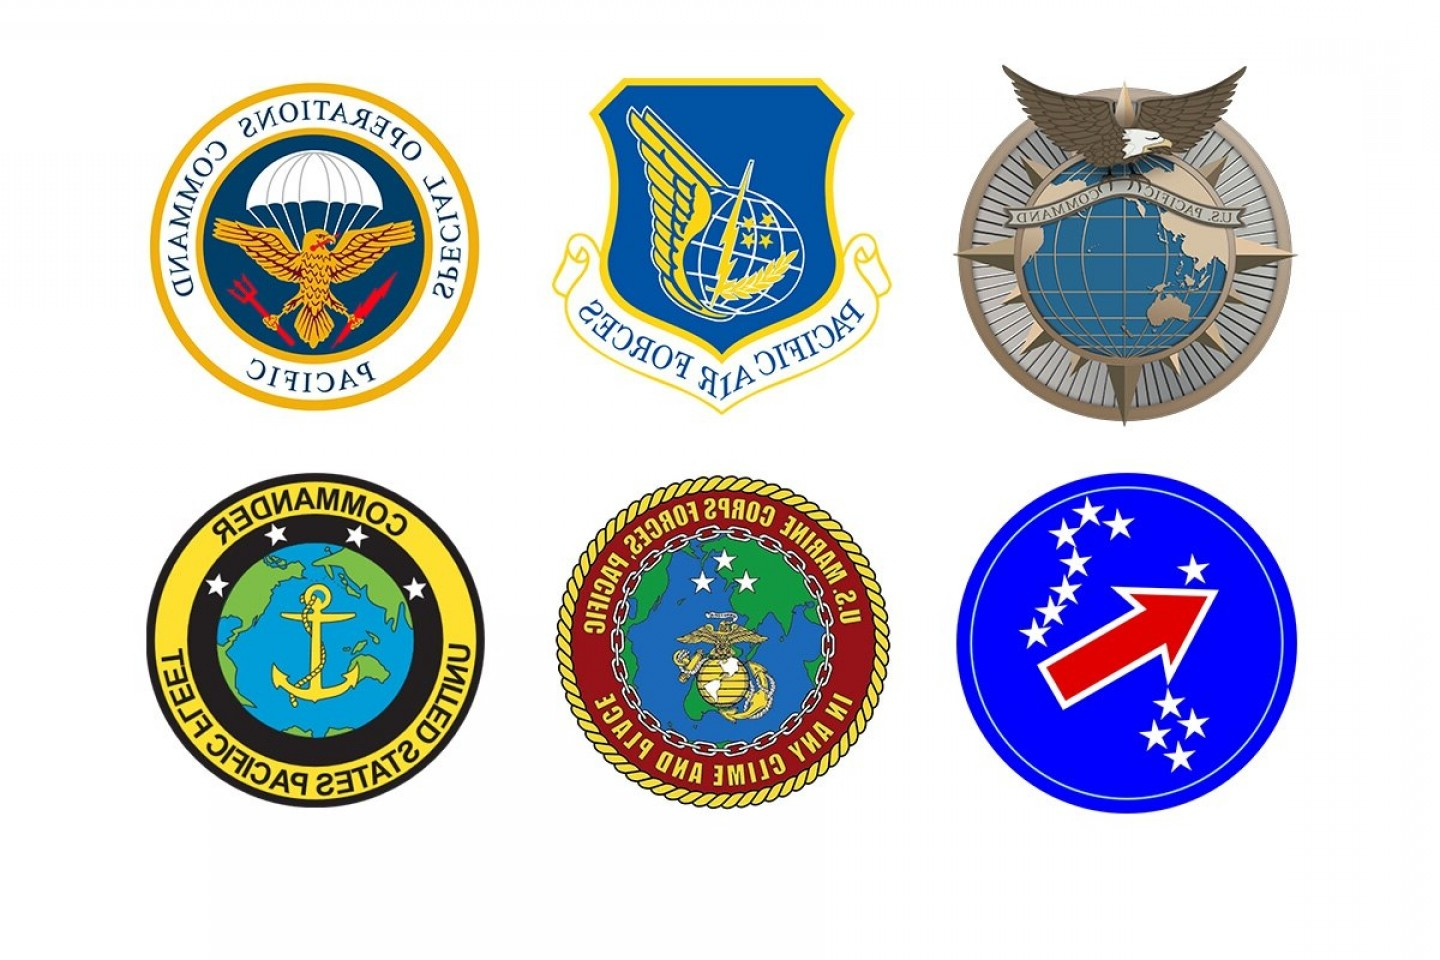 United States Armed Forces Logo Vector: What Happens To All The Us Pacific Command Logos Now That It Has A New Name